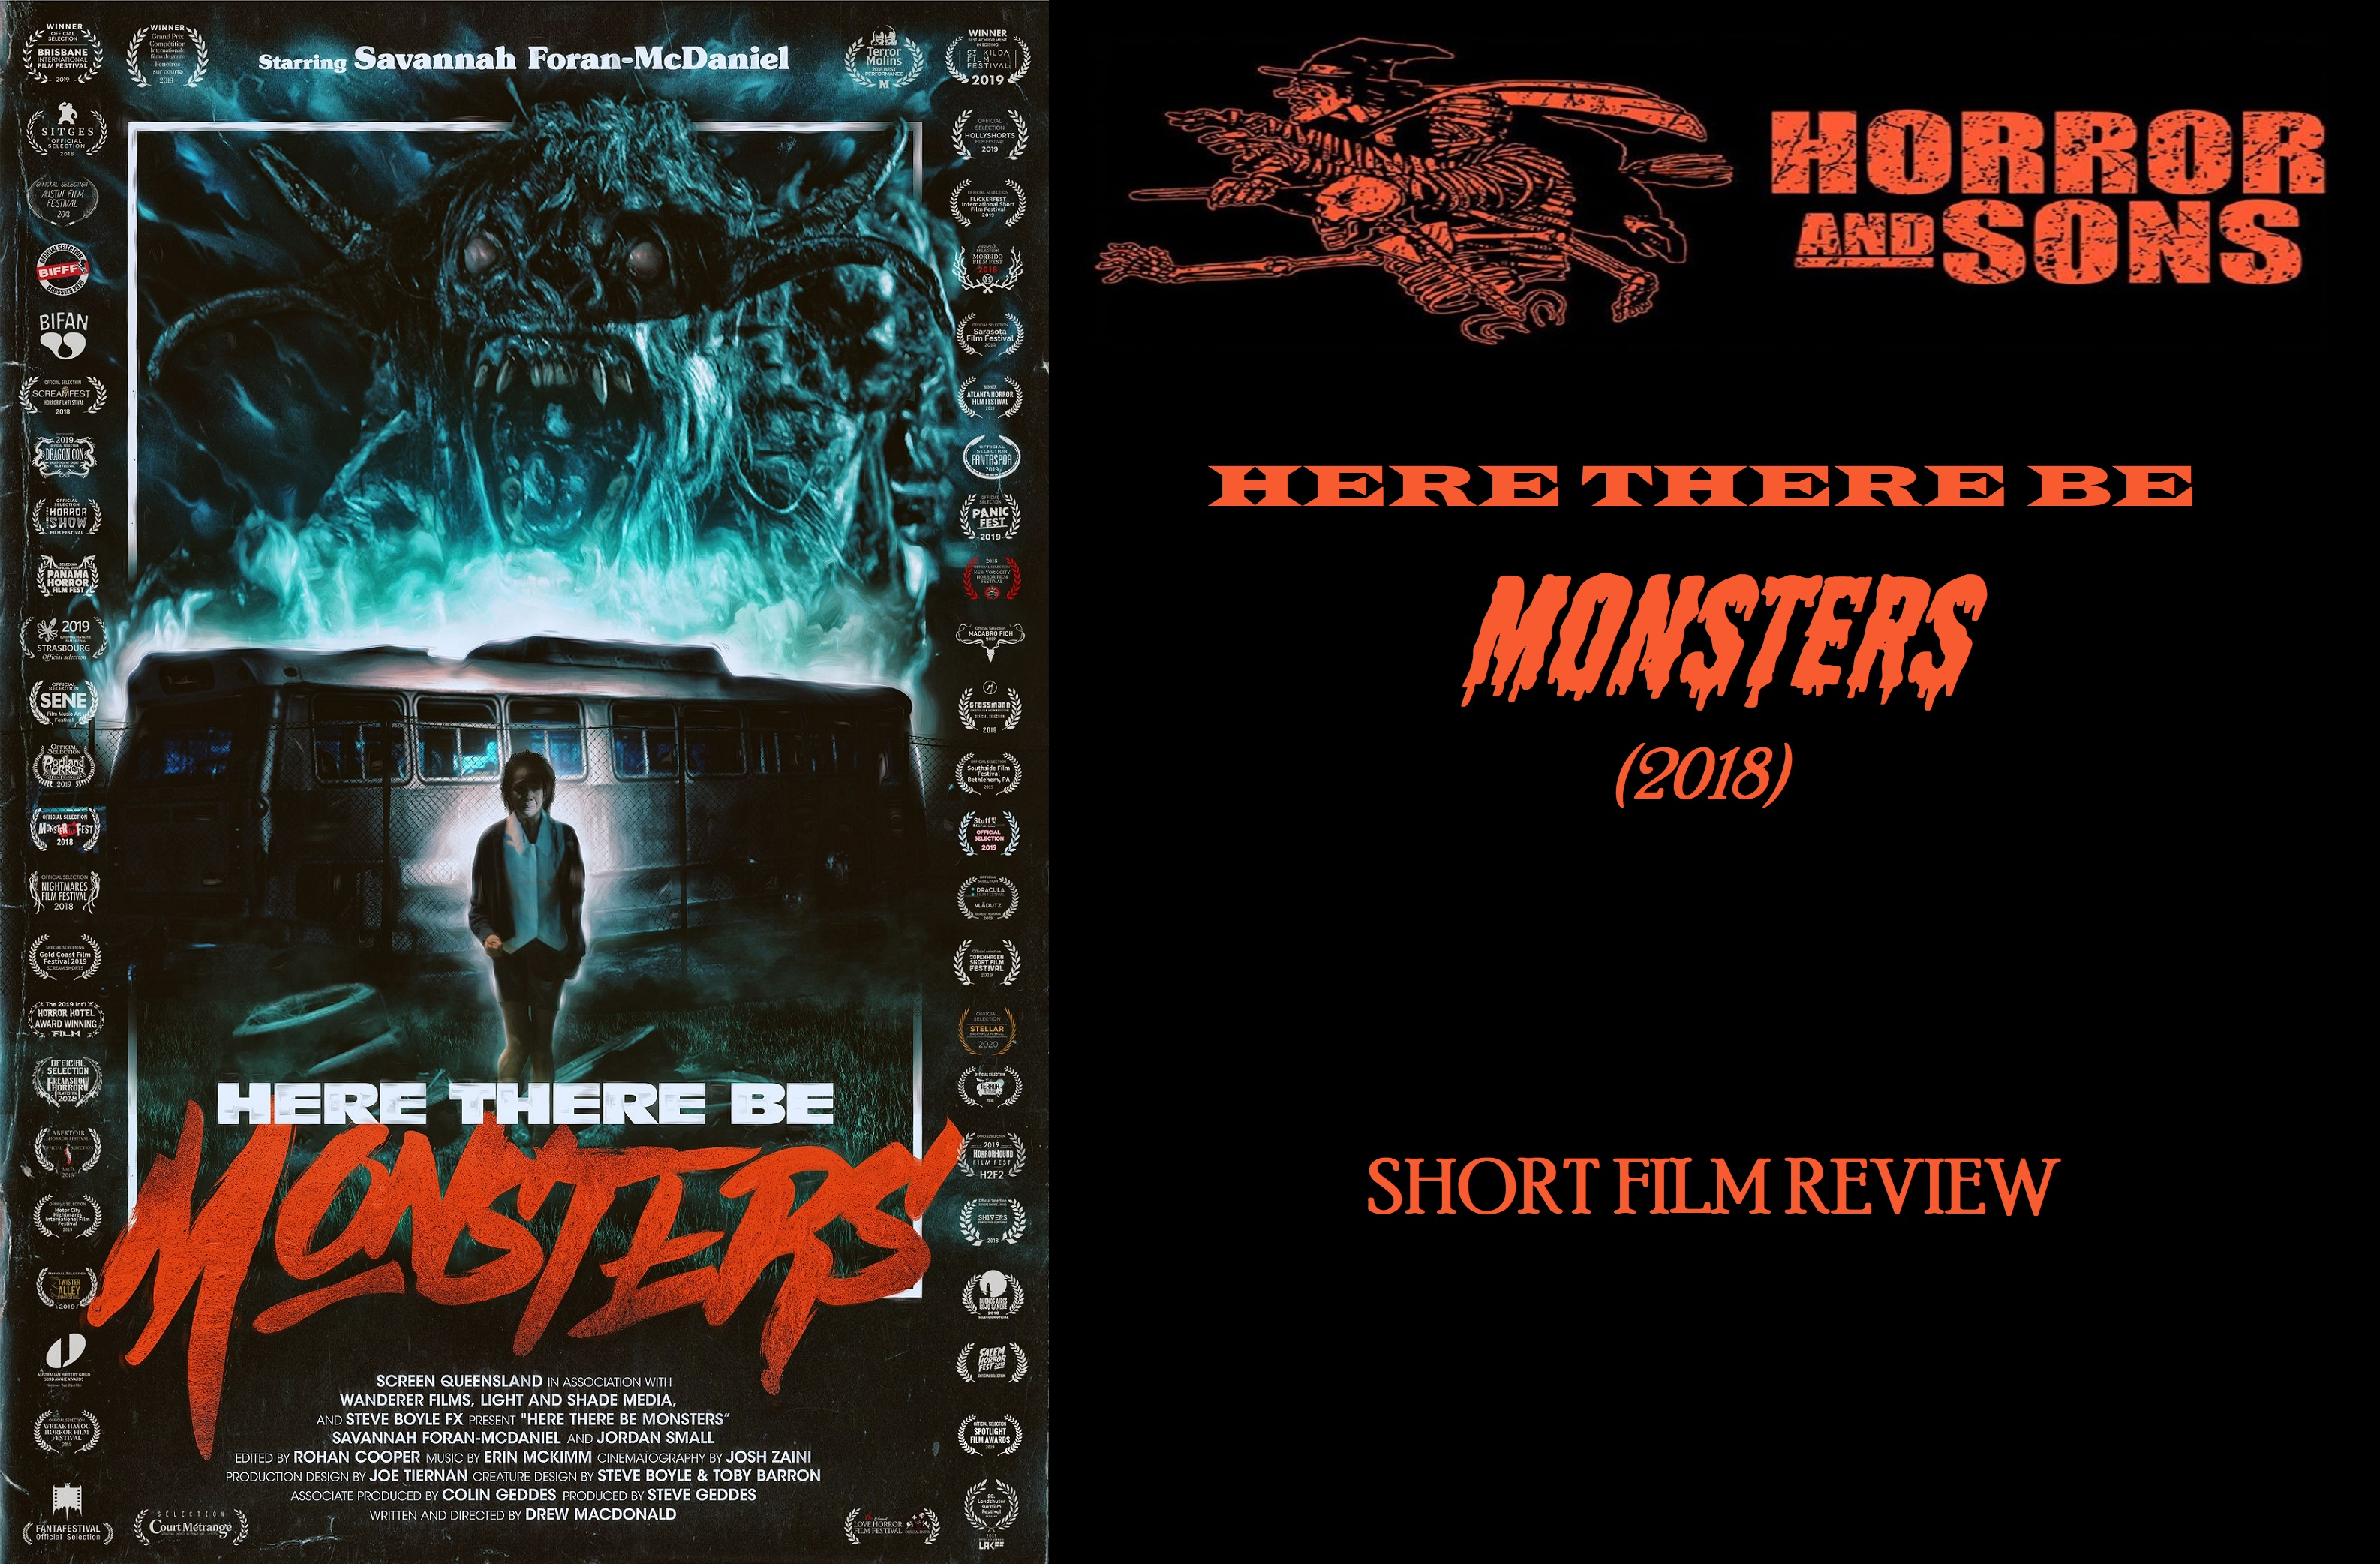 Action/Nonton-Film-Bullies/ : Here There Be Monsters 2018 ...